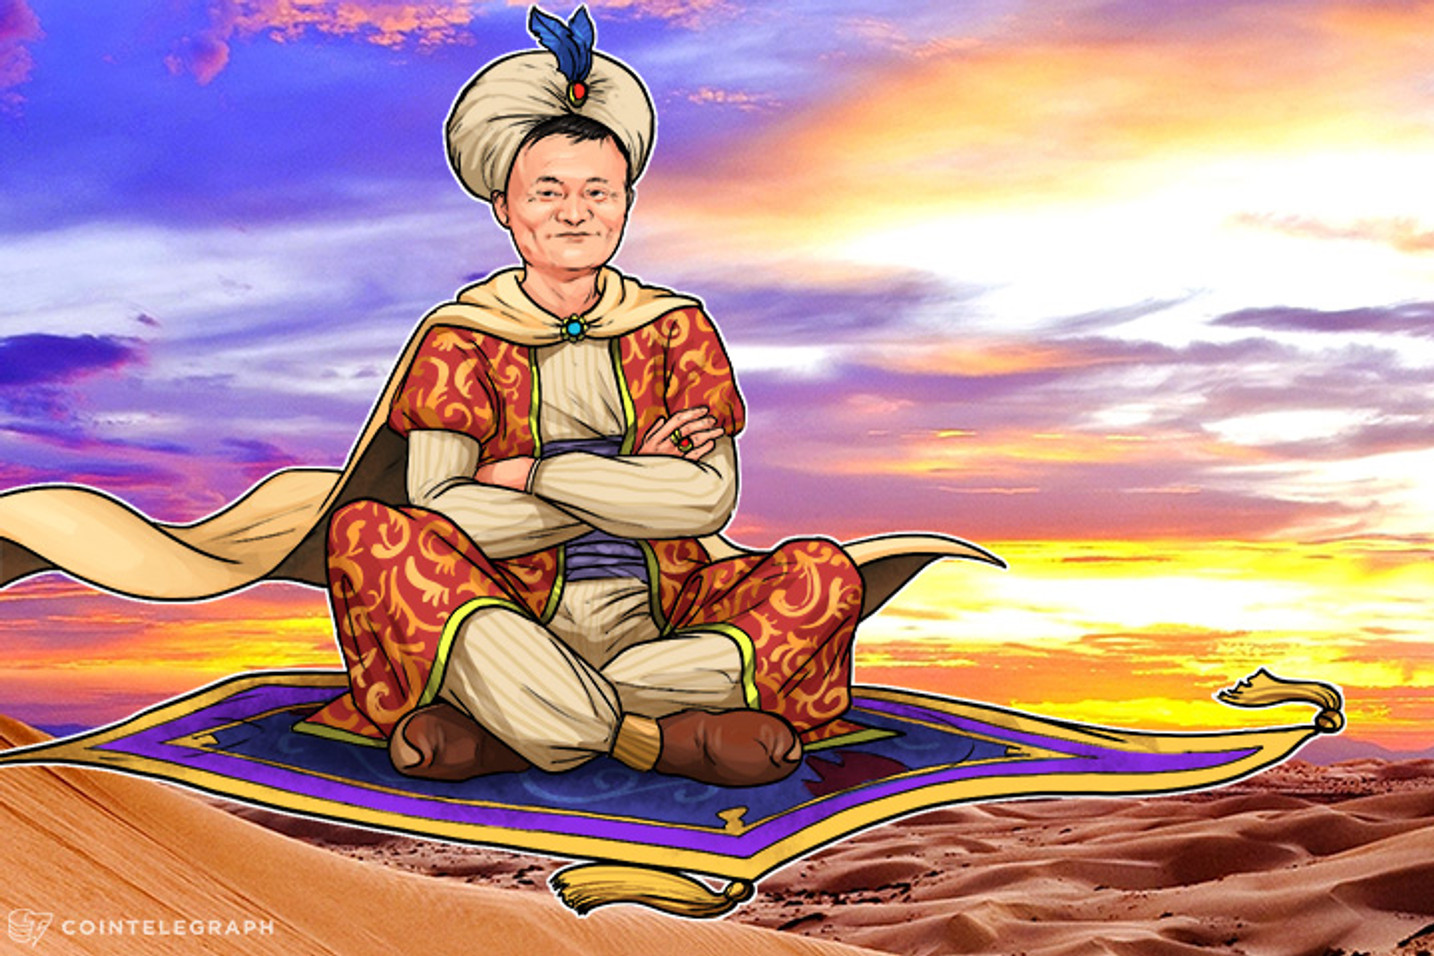 $60 Bln Alipay to Adopt Blockchain Looking to Serve 2 Billion Users